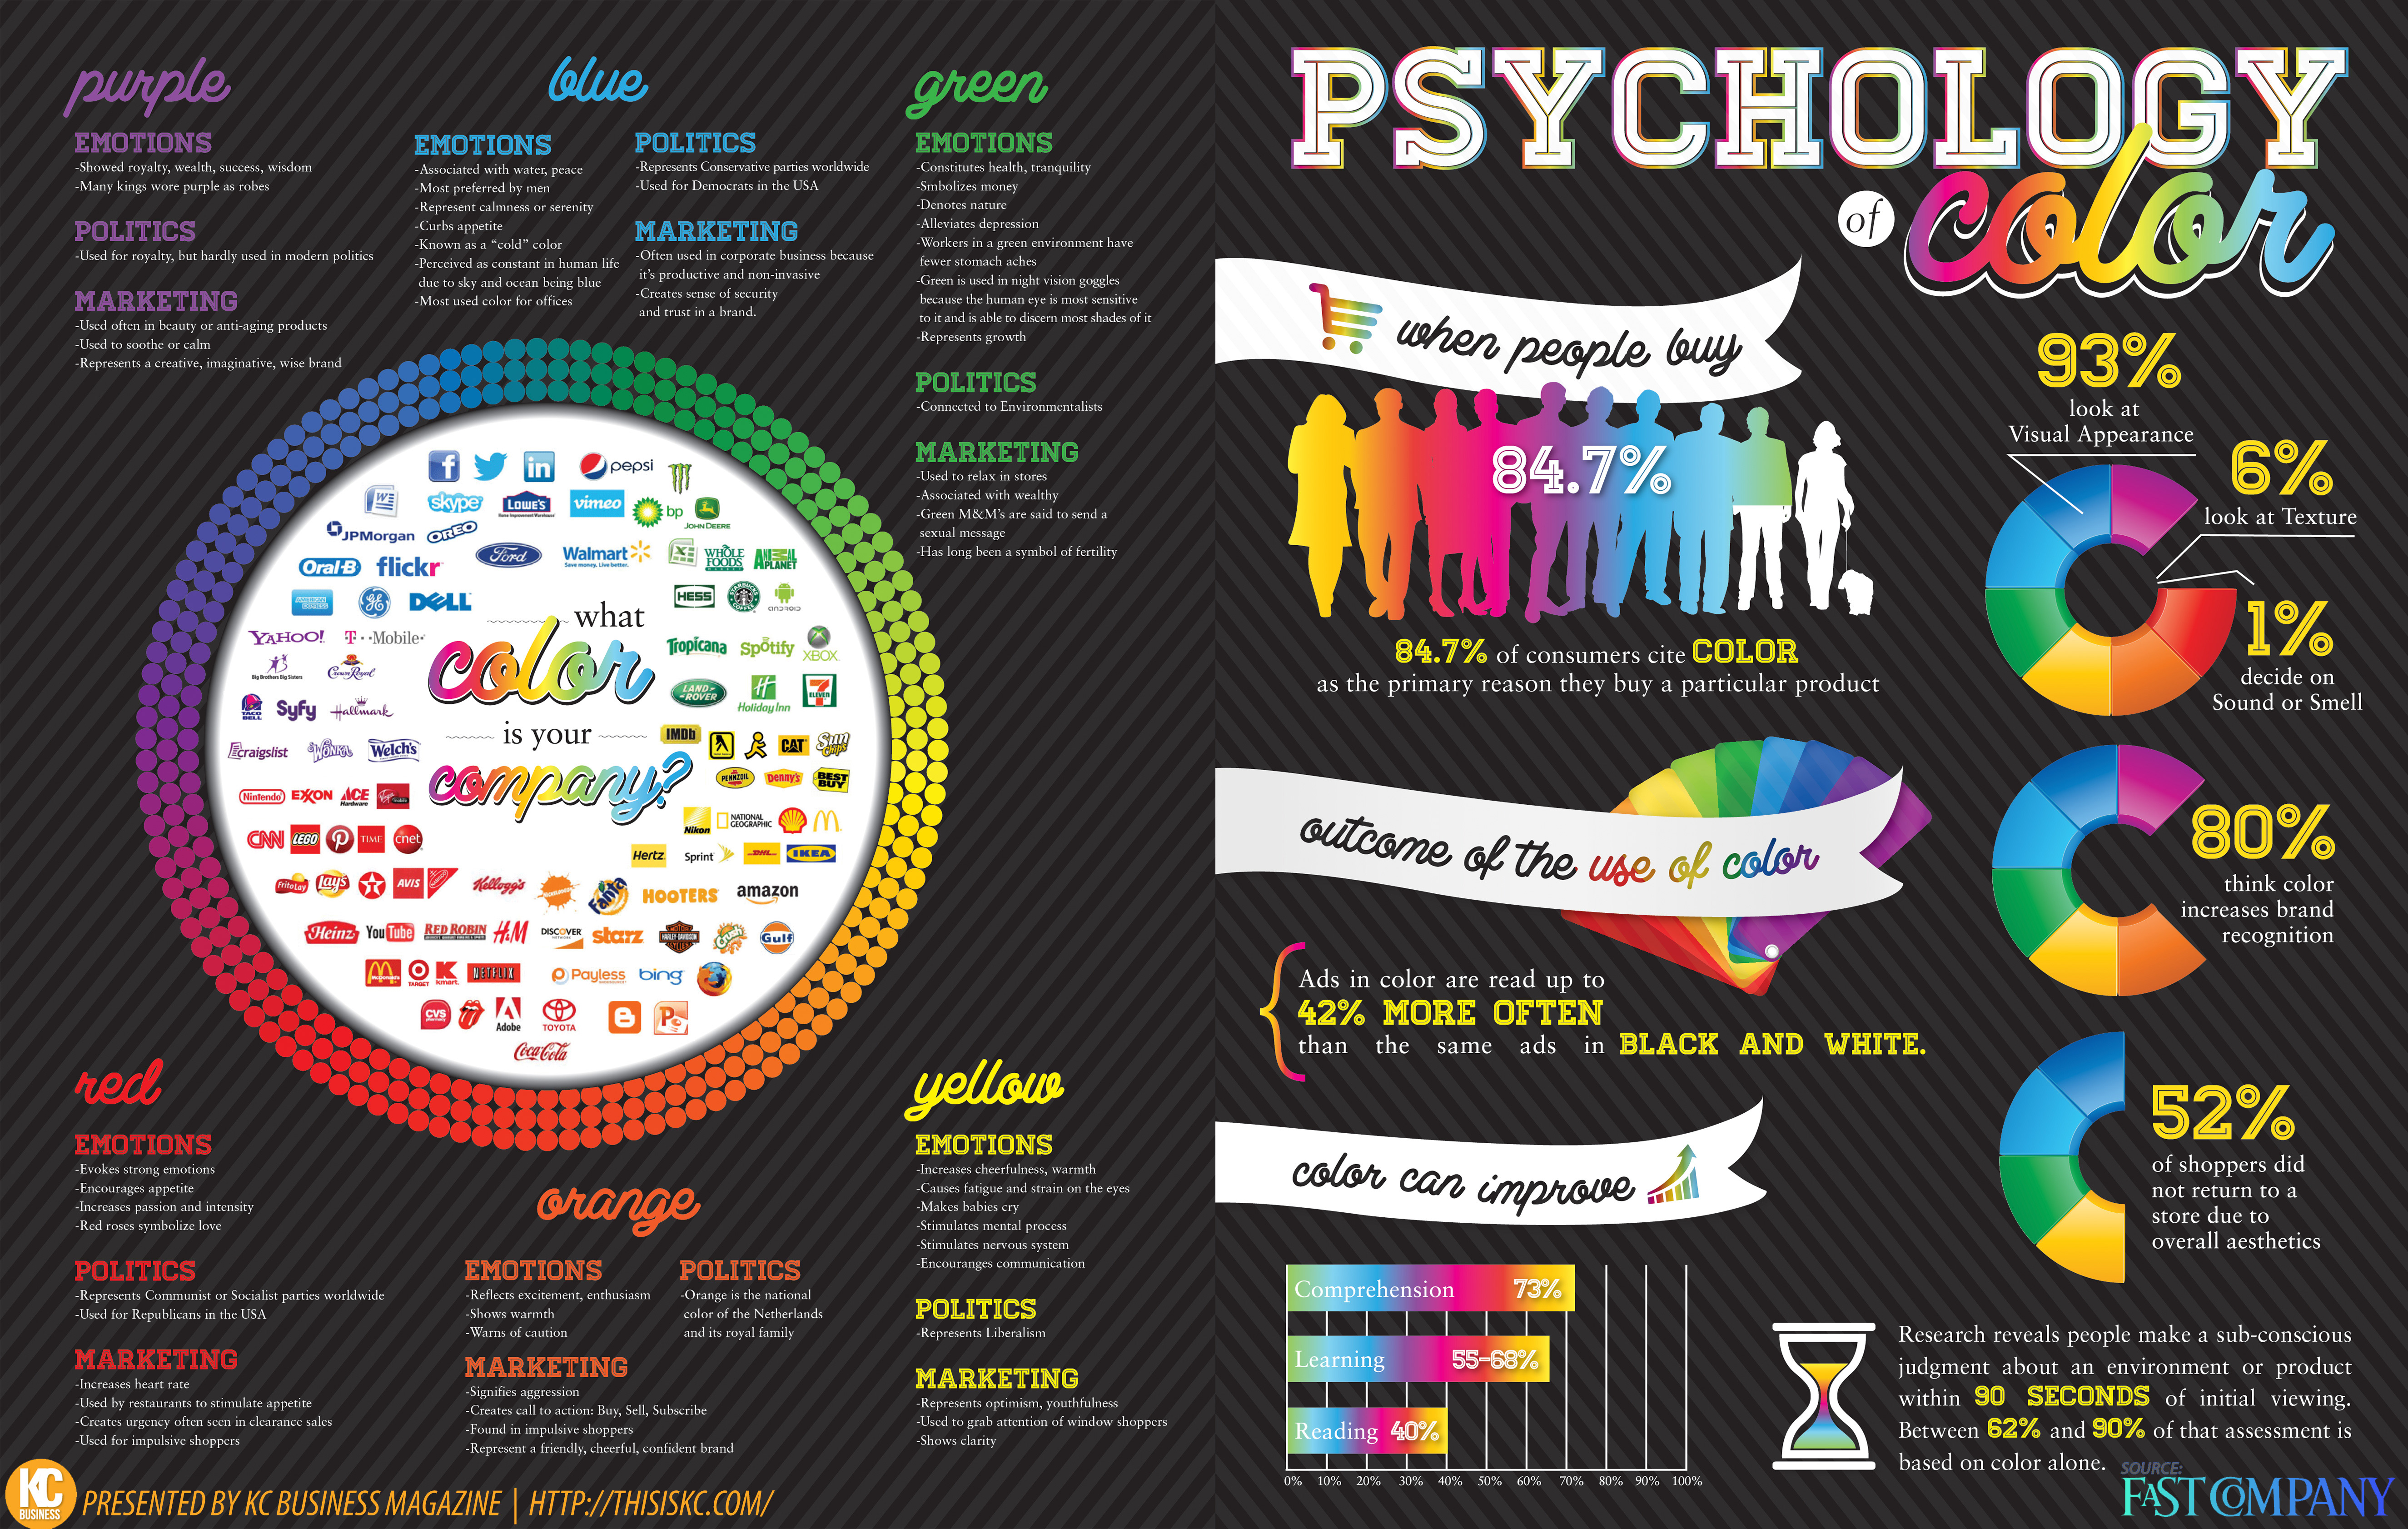 PSYCHOLOGY-OF-COLOR-INFOGRAPHIC-KCB-2014.jpg